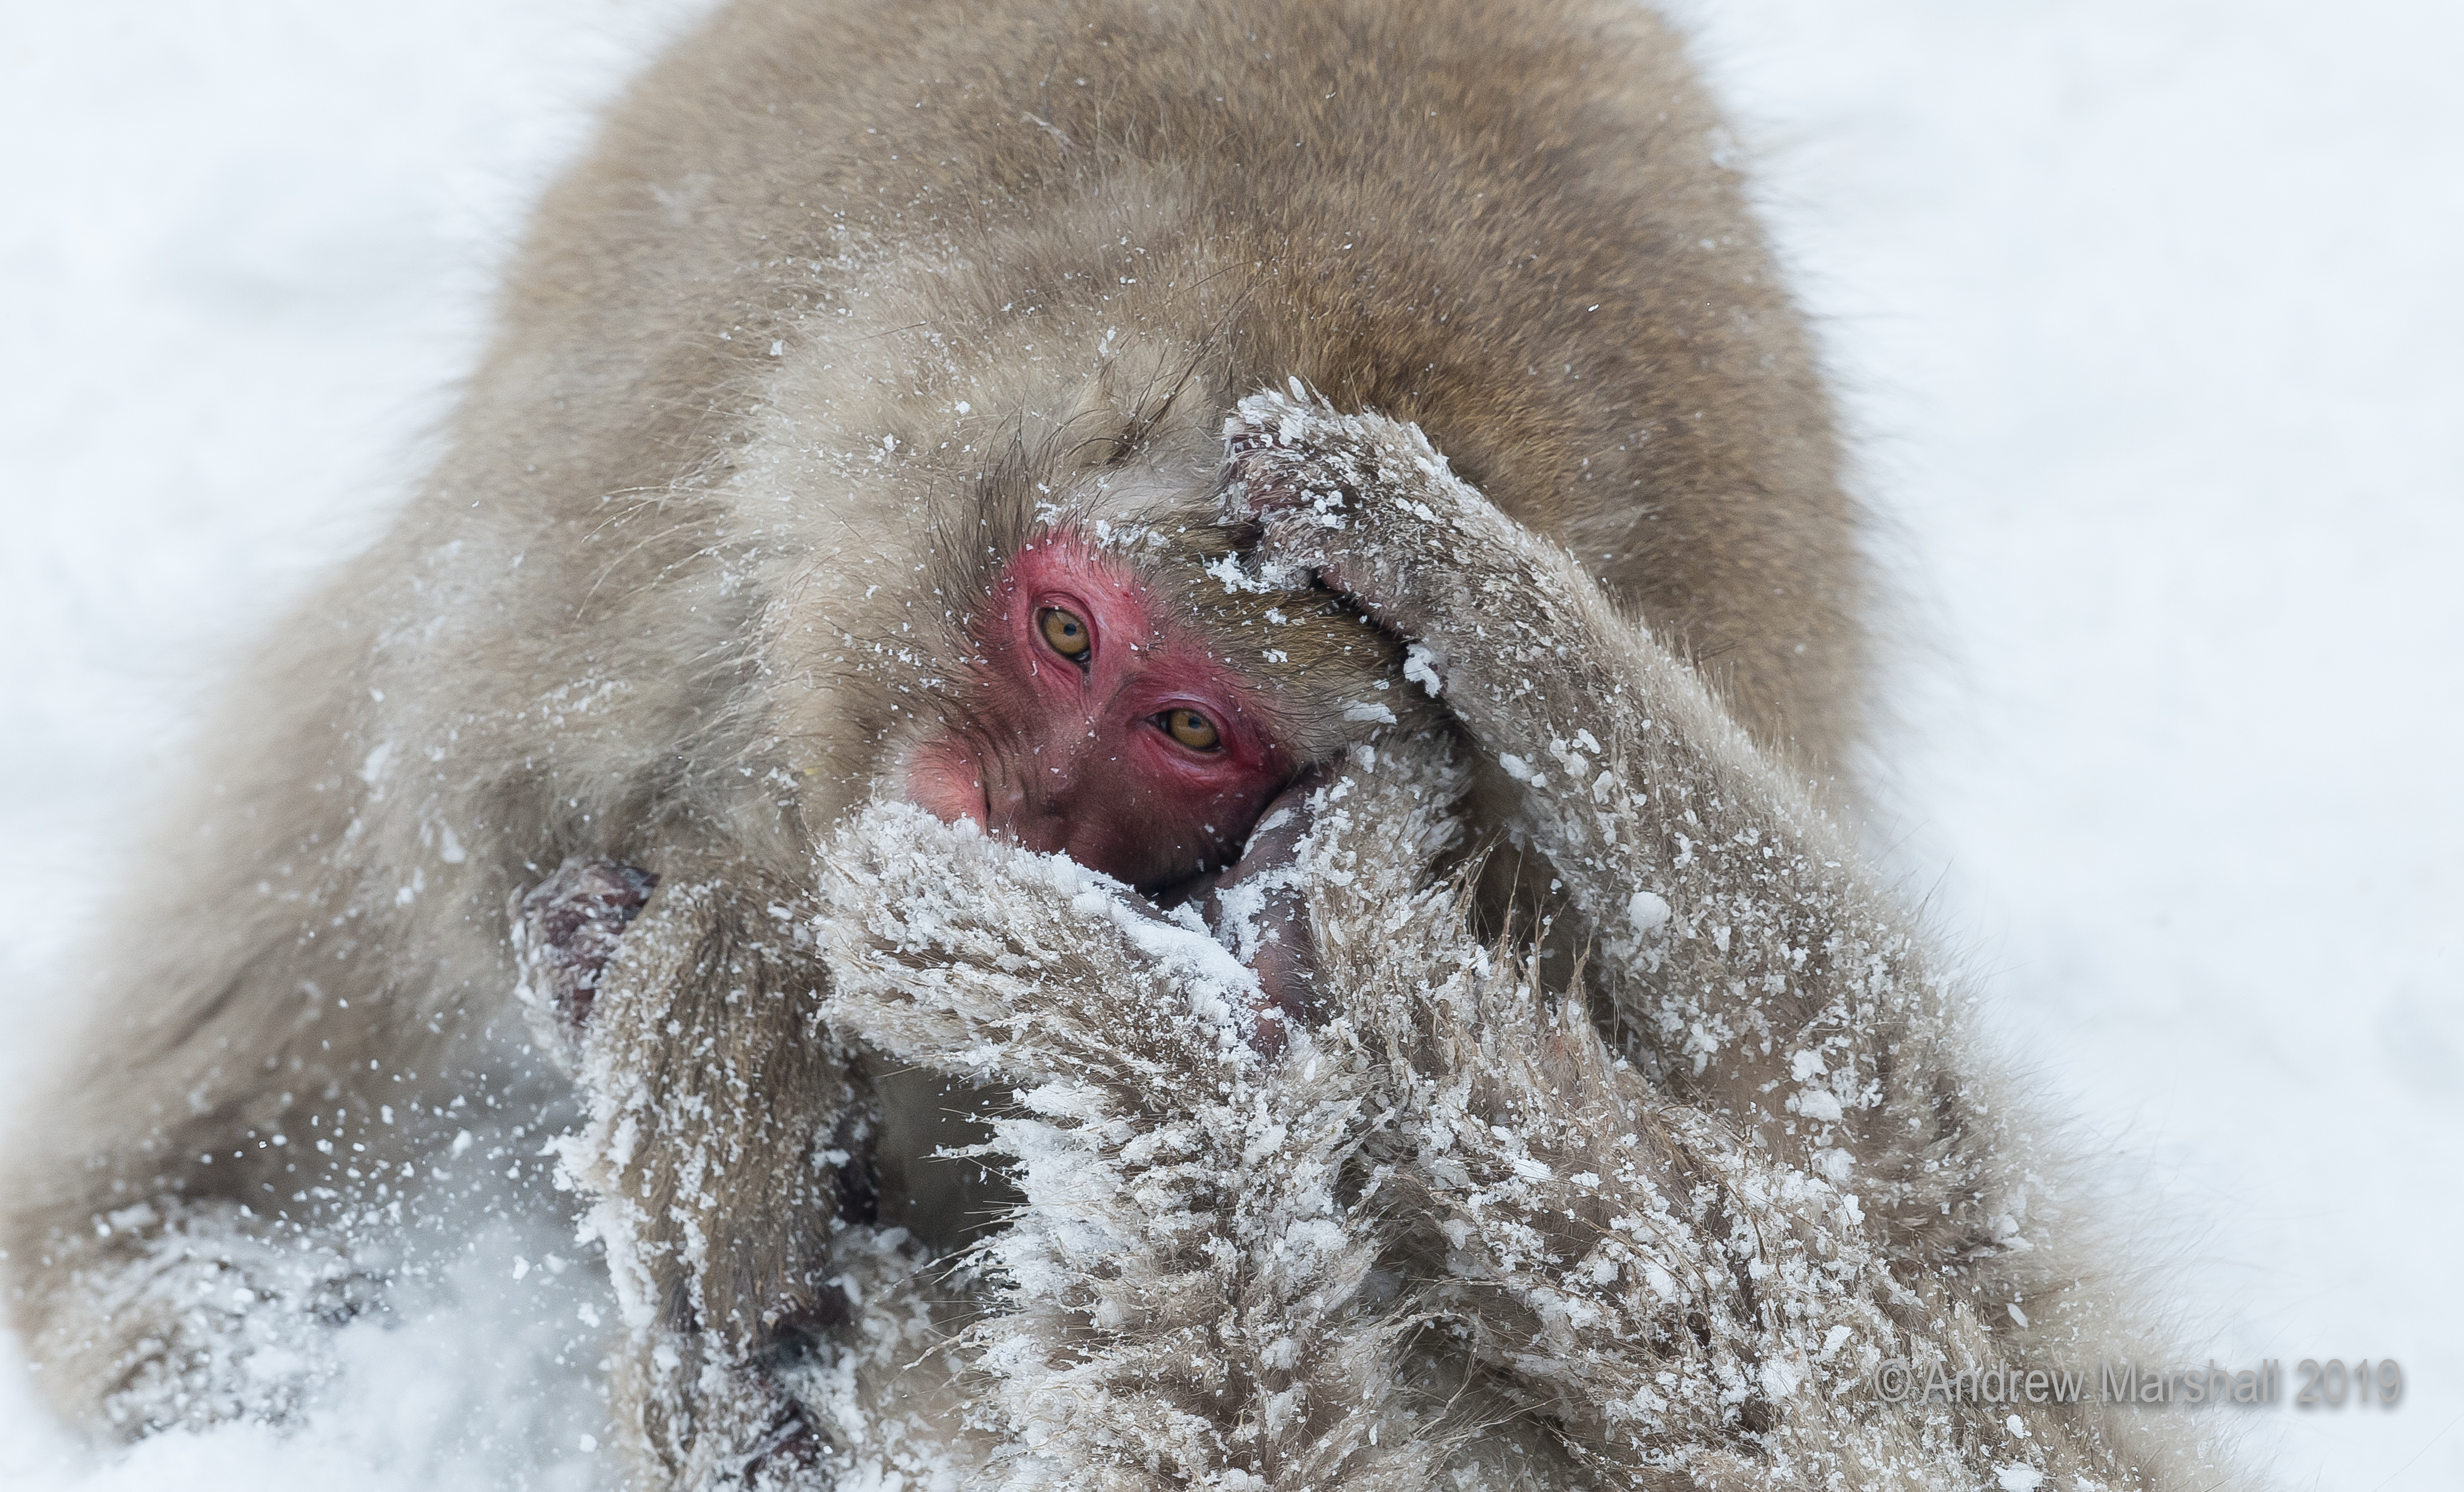 Snow monkey wrestling match